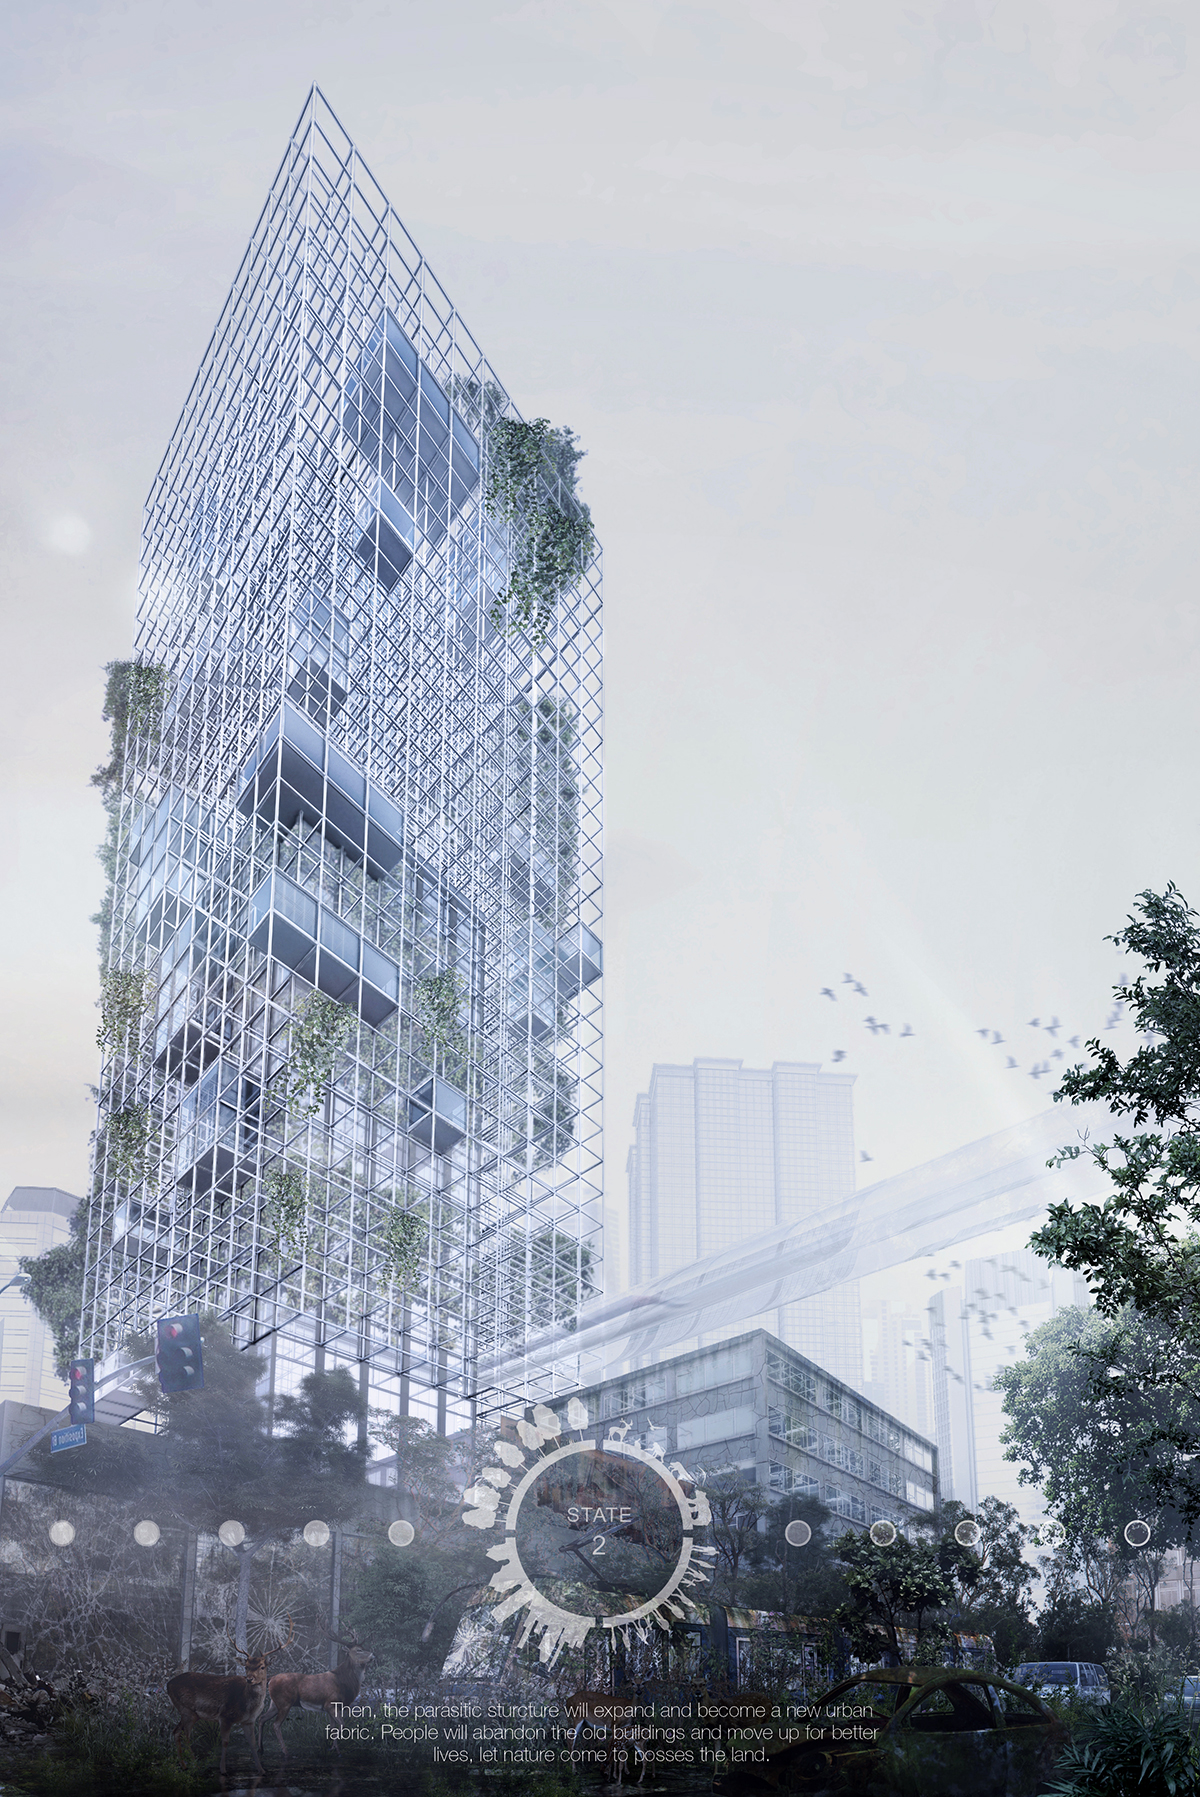 The Banyan Tree Skyscraper Was Designed To Support Humans And